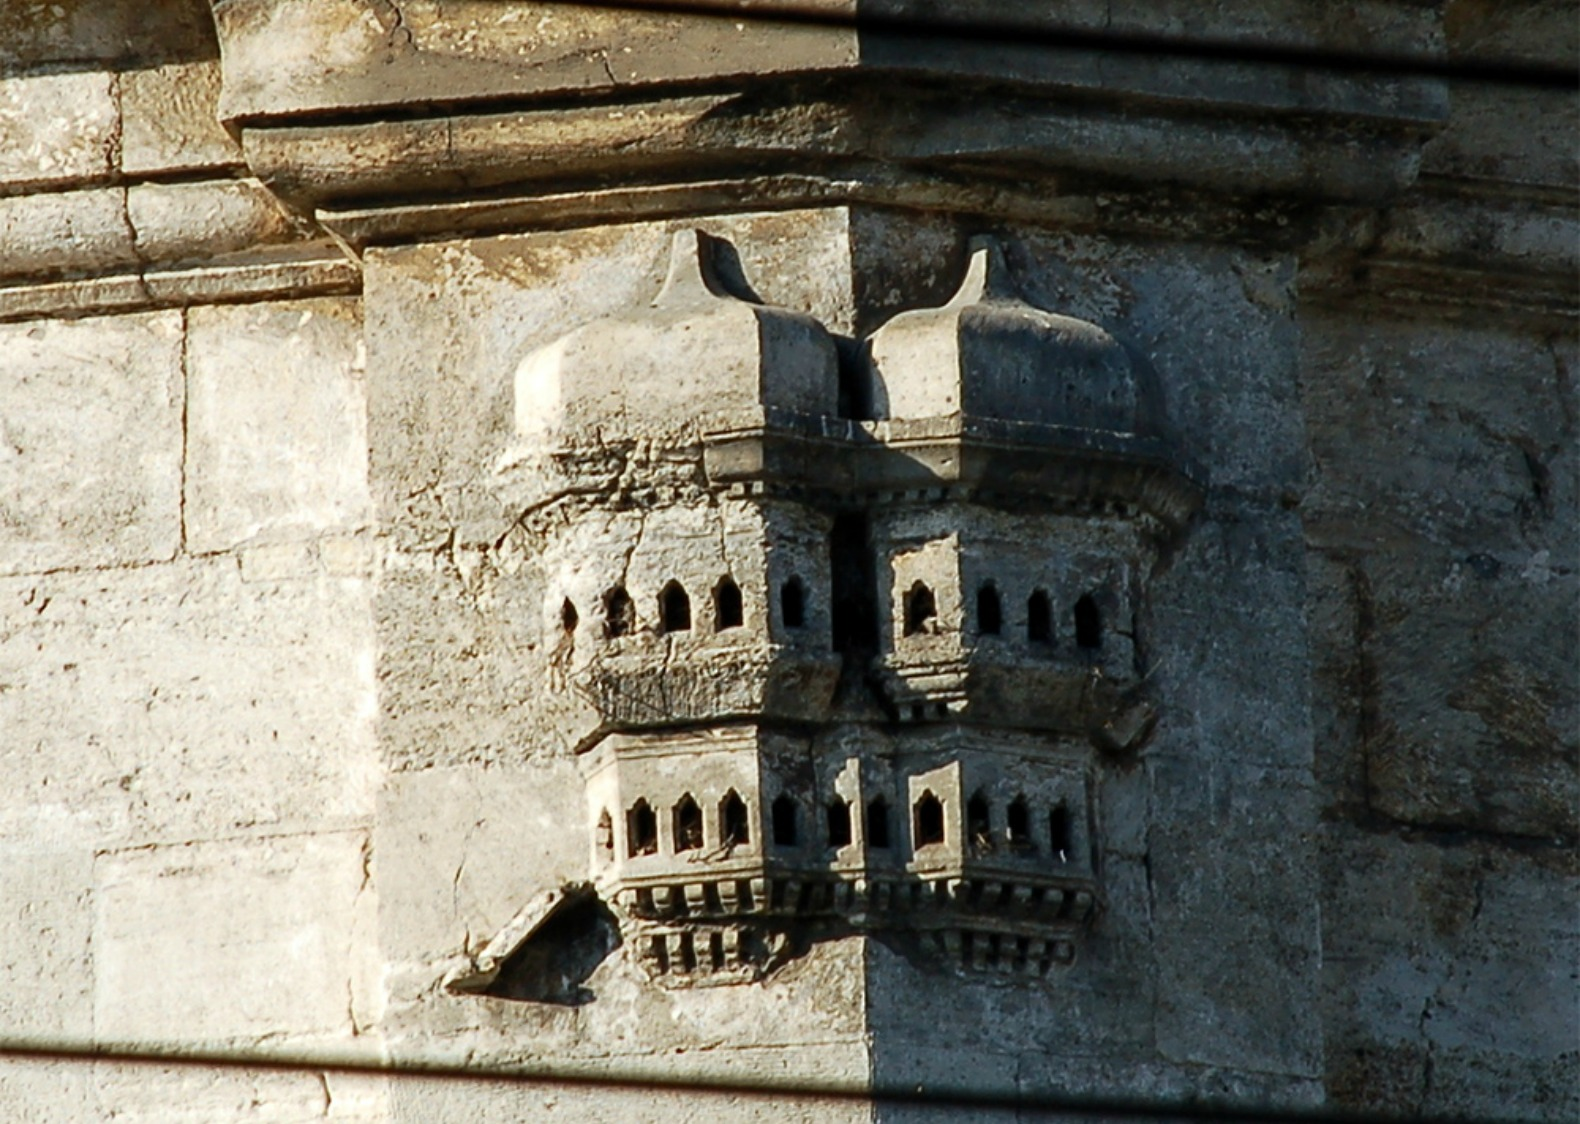 Incredible Ottoman-era bird palaces reveal how Turkish people ... on doll house homes, cockatiel homes, great britain homes, bellah homes, mouse homes, north america homes, baby chicken homes, endangered homes, bunk homes, pencil sketch homes, wild homes, hedgehog homes, snake homes, barrack homes, tadpole homes, bole homes, deer homes, crooked homes, byrd homes,